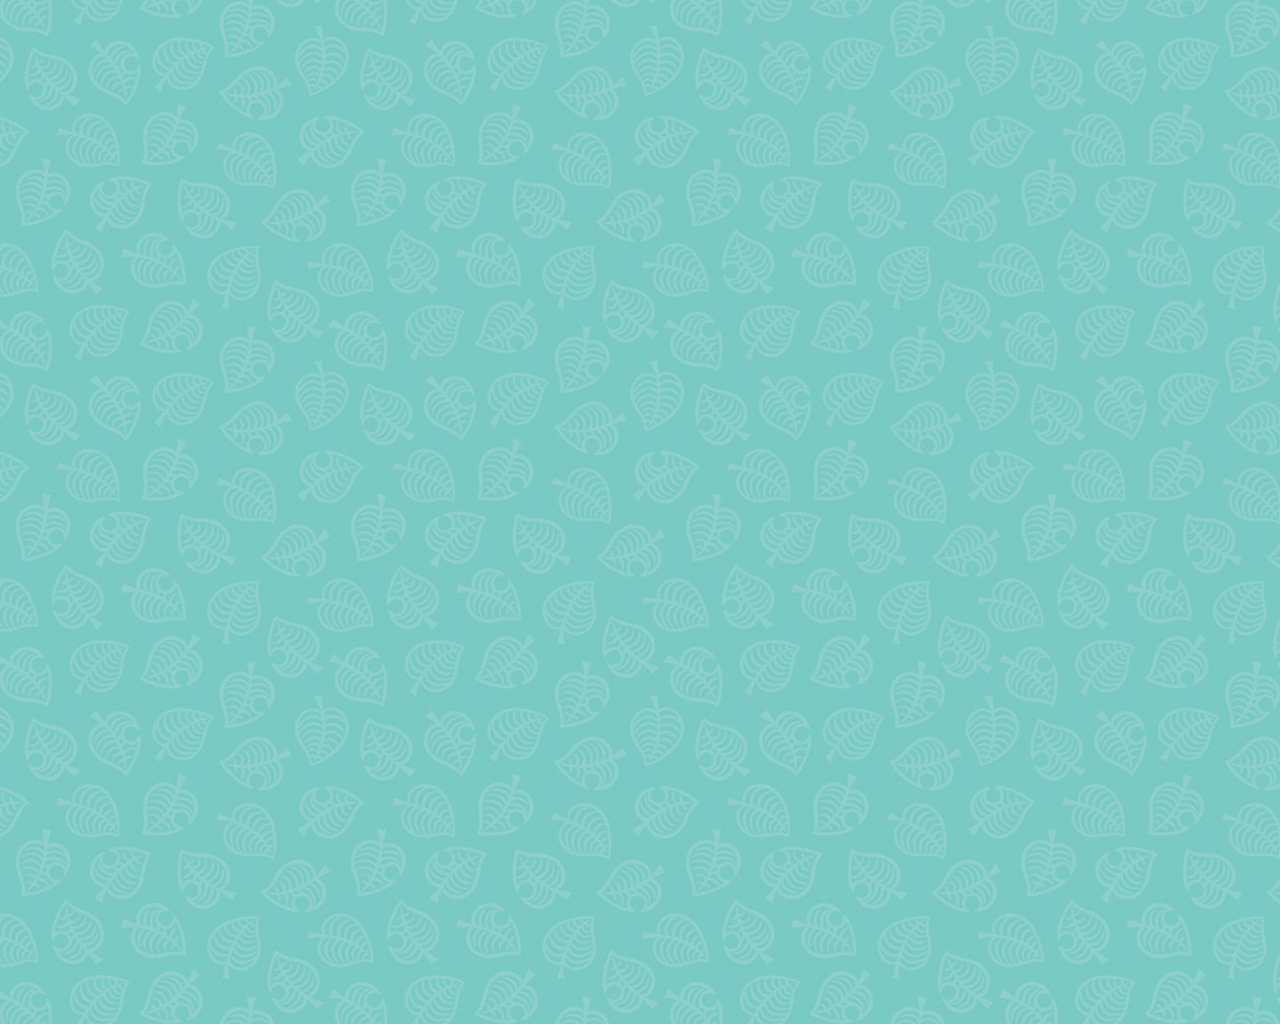 Animal Crossing New Horizons Leaf Pattern Version 3 Wallpaper Cat With Monocle